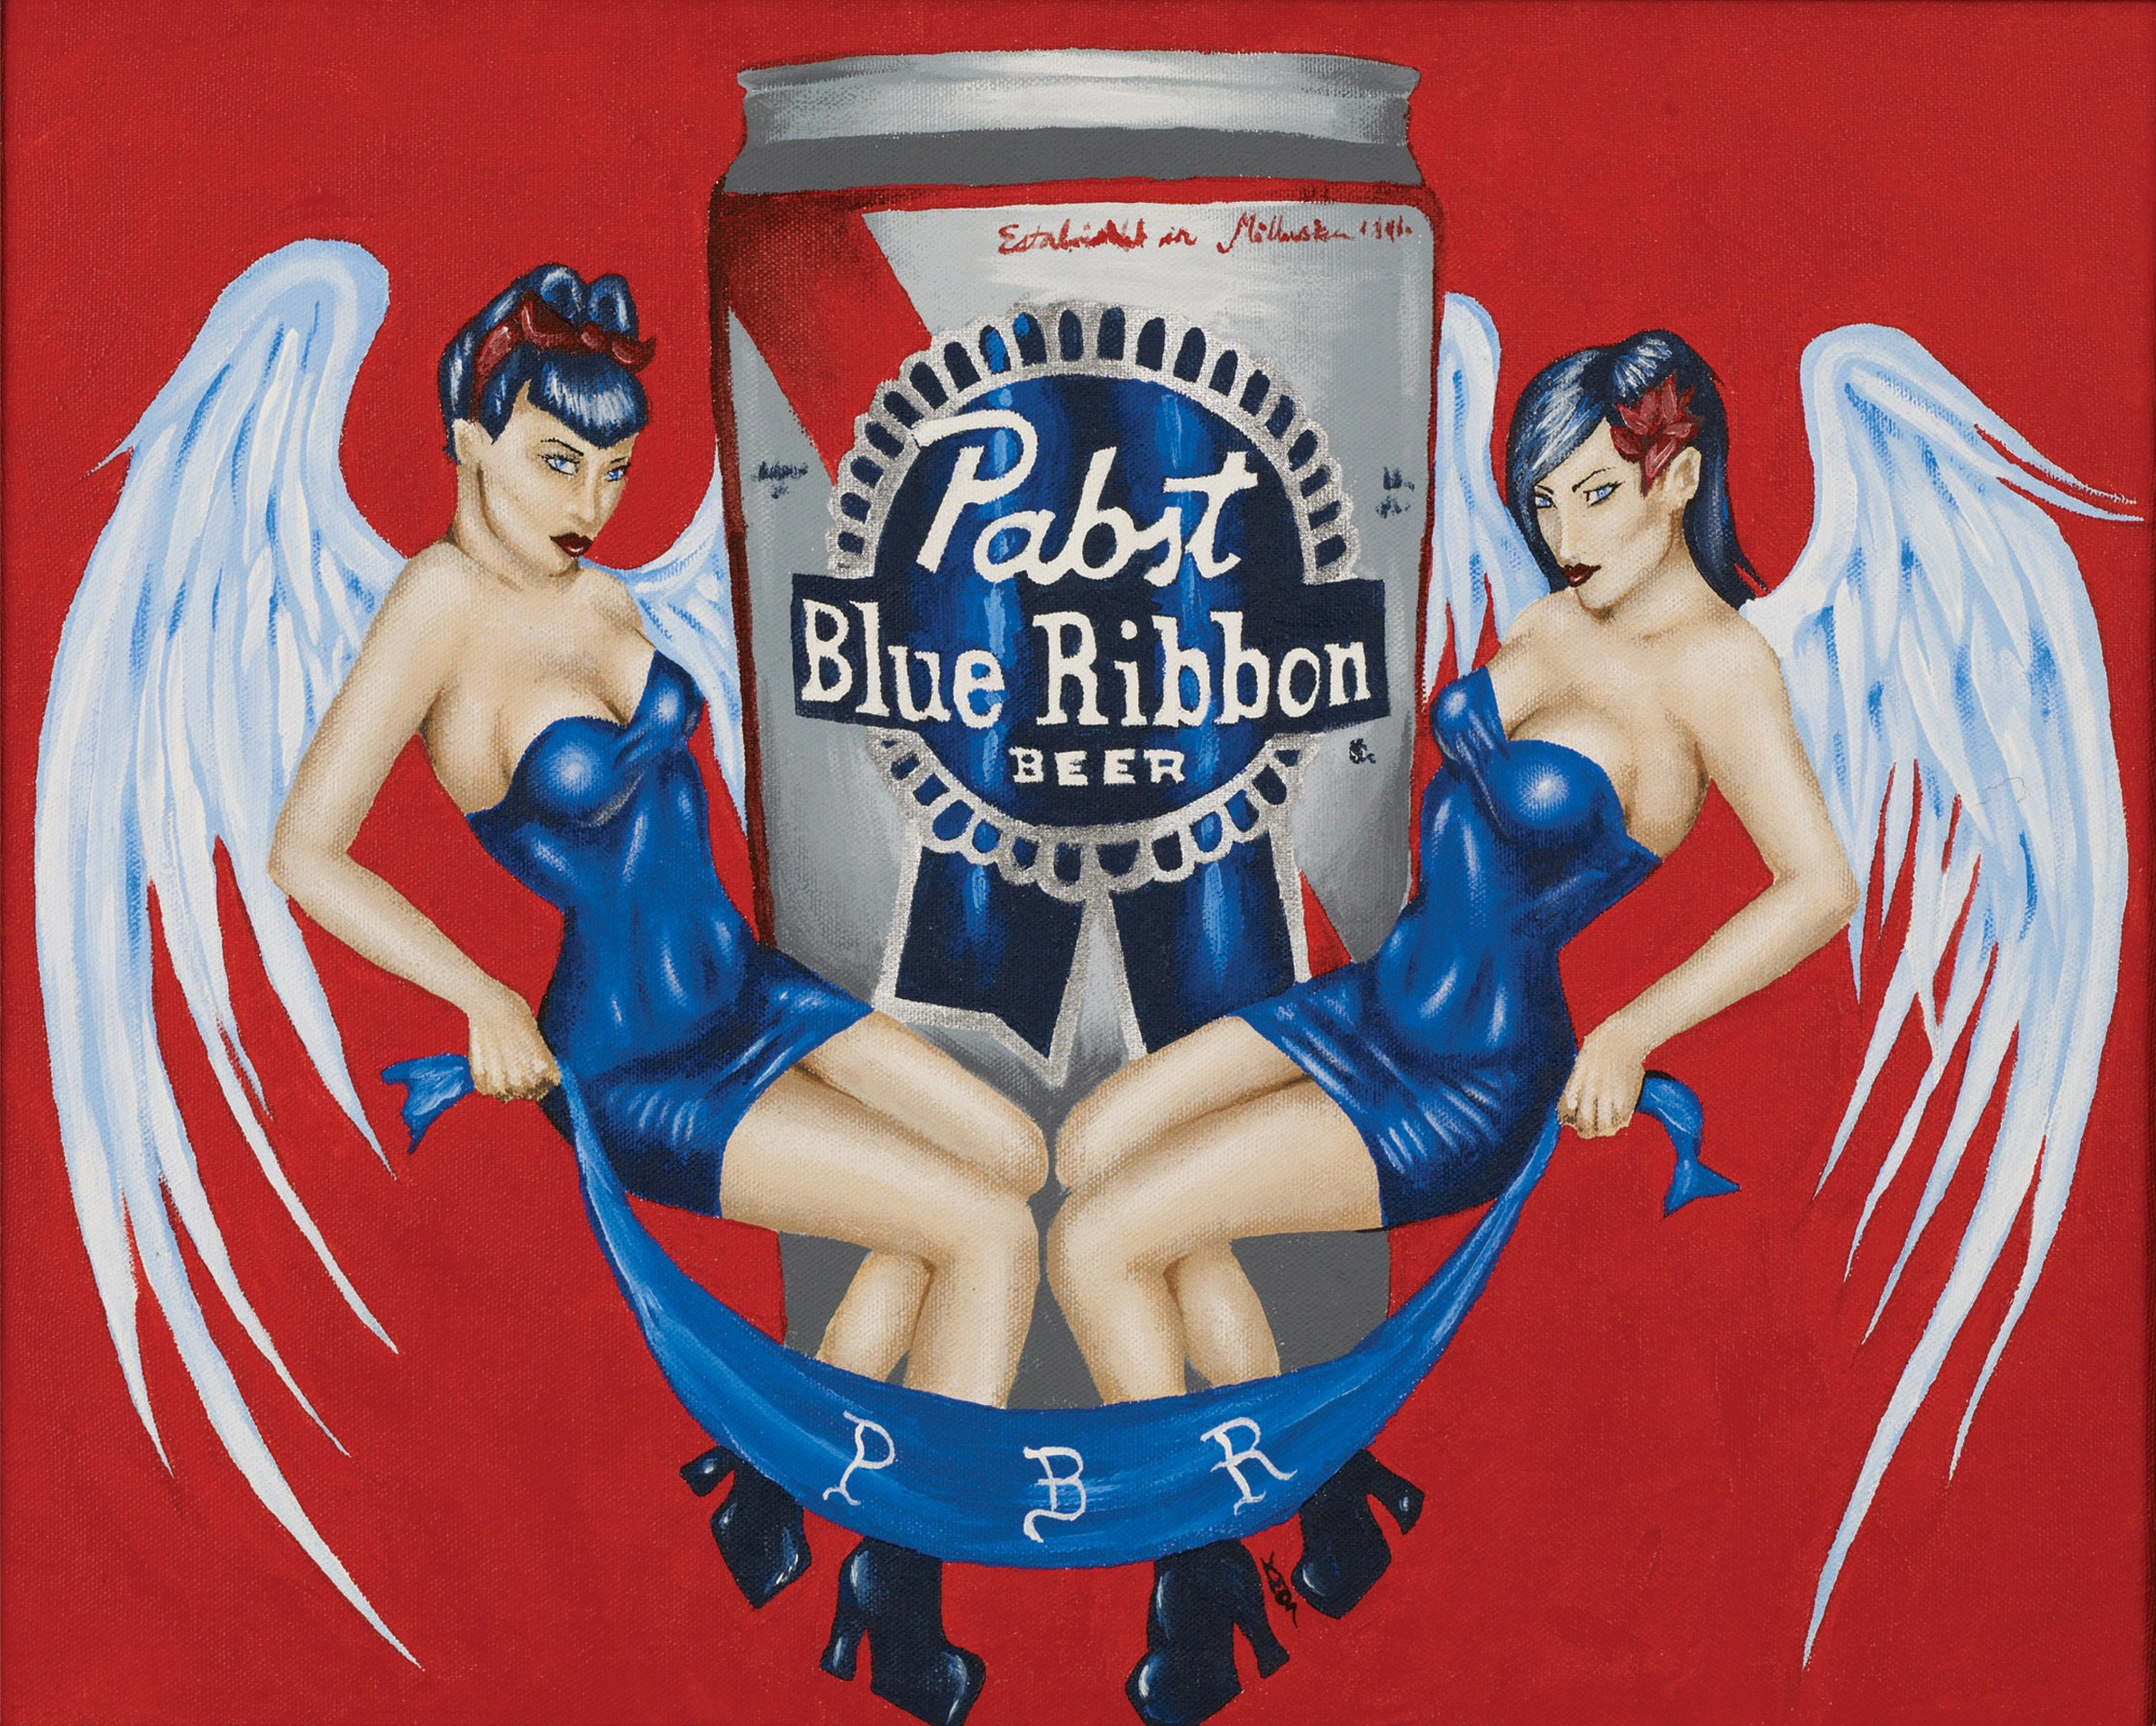 PABST BLUE RIBBON BEER alcohol (15)